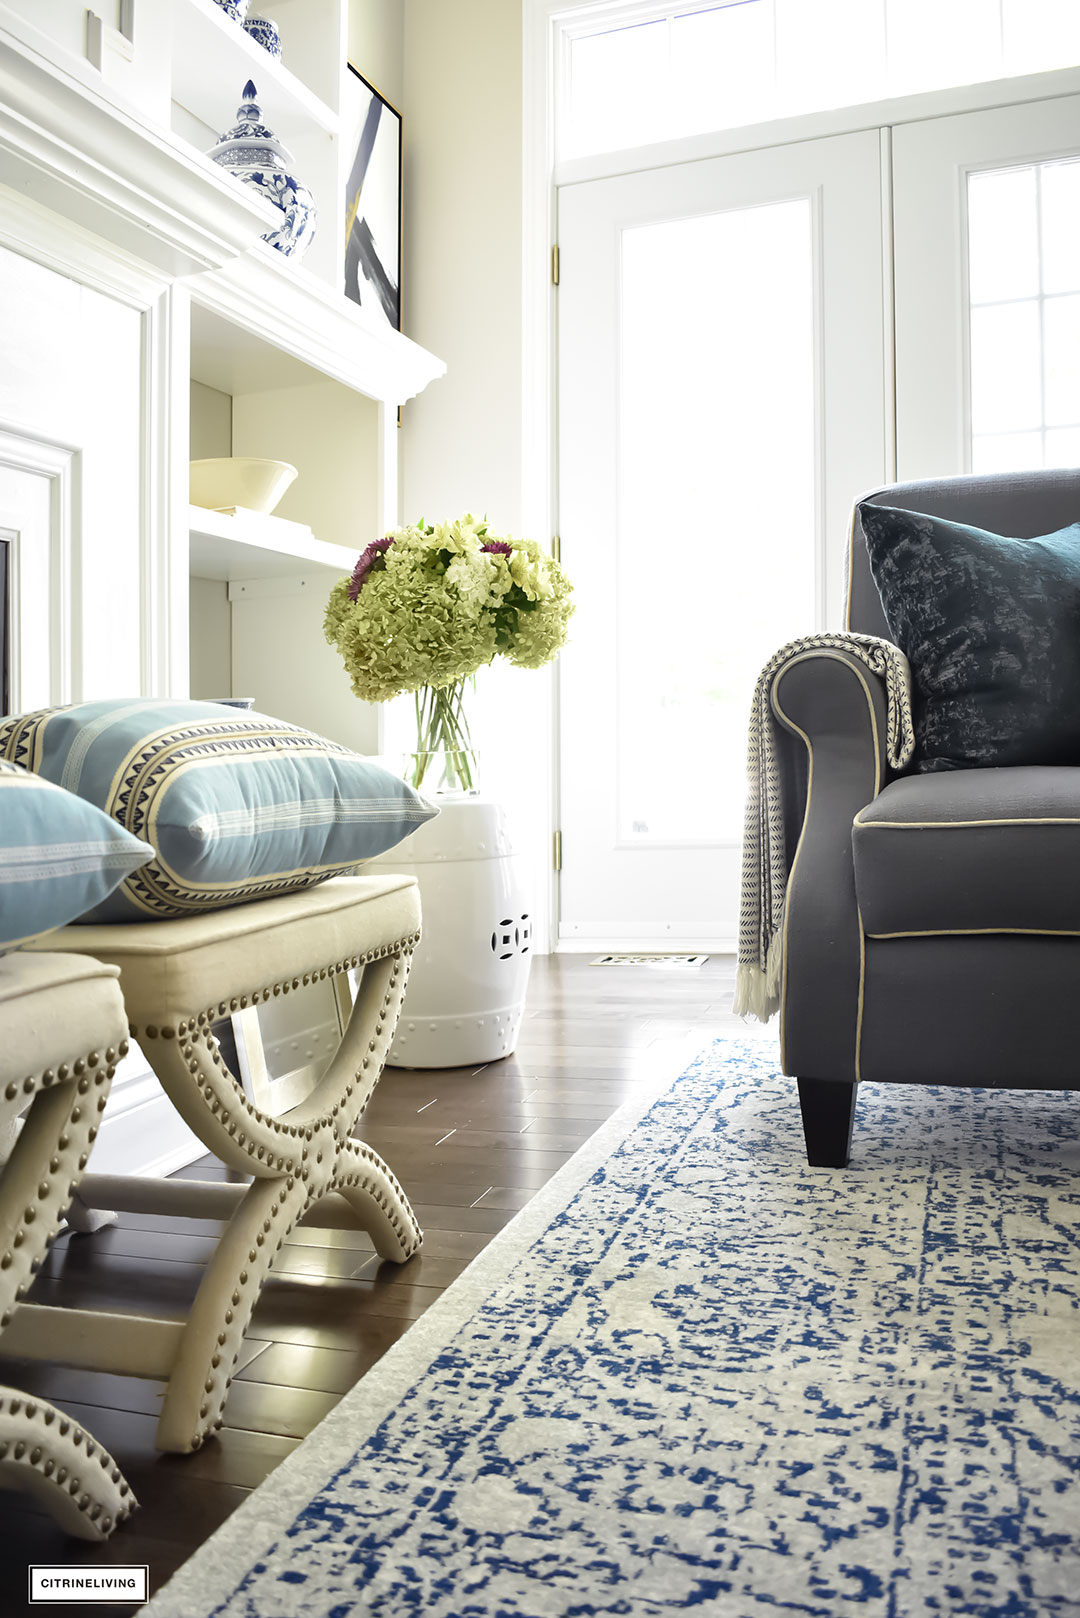 Fal Home Tour. Living room with upholstered stools, blue vintage rug, blue and white accents and pillows.